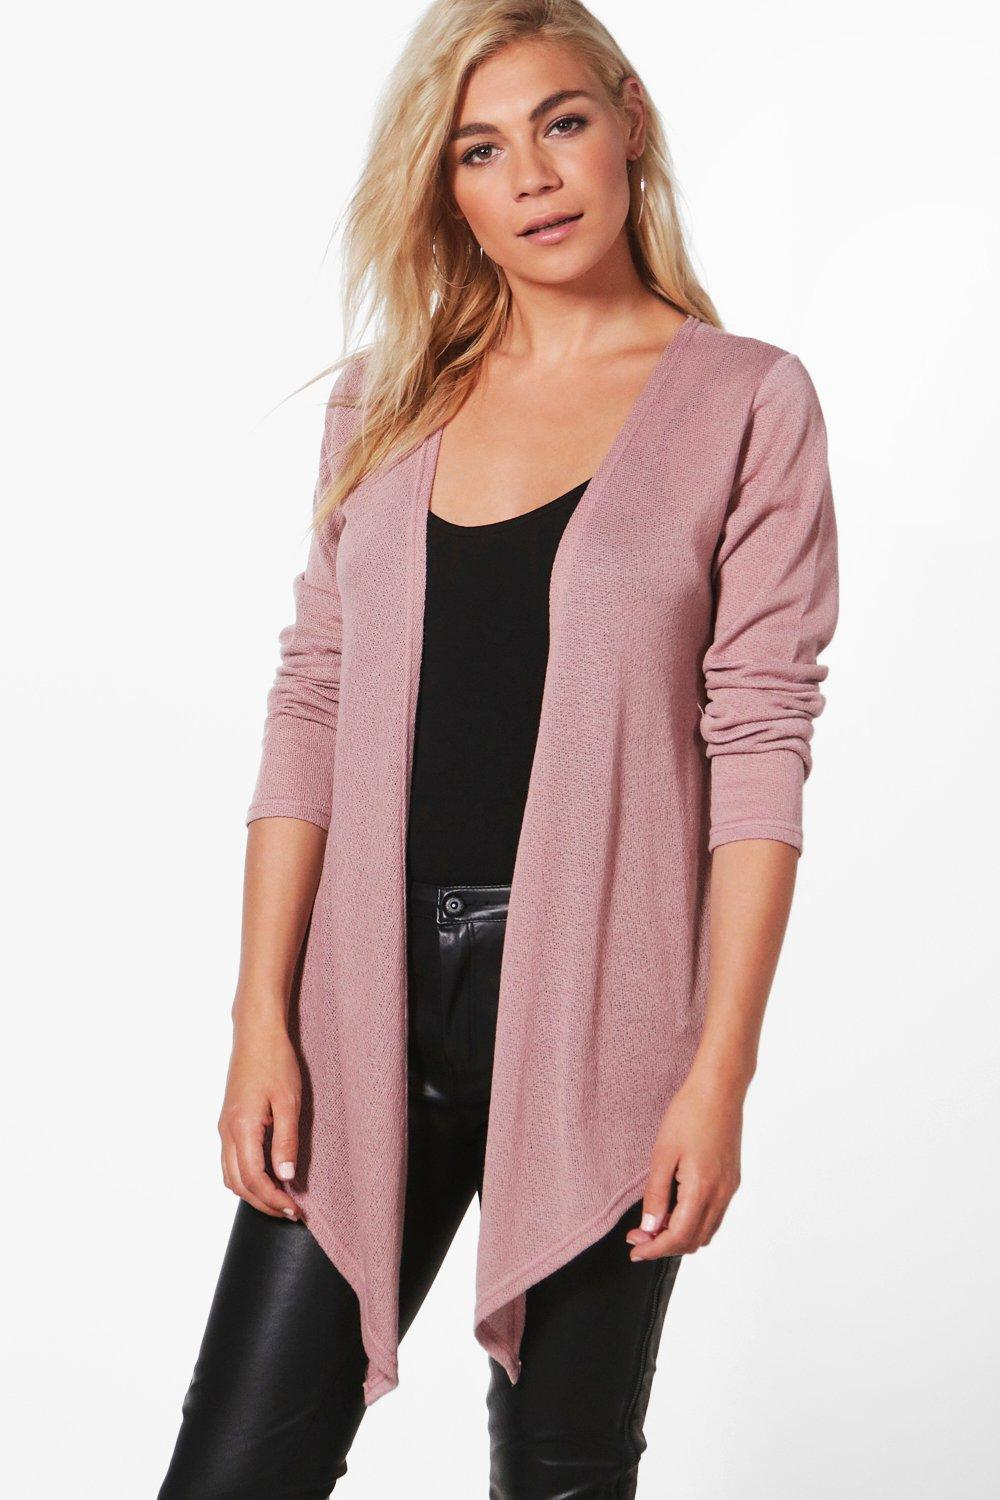 Boohoo Cara Soft Knit Waterfall Cardigan in Pink | Lyst